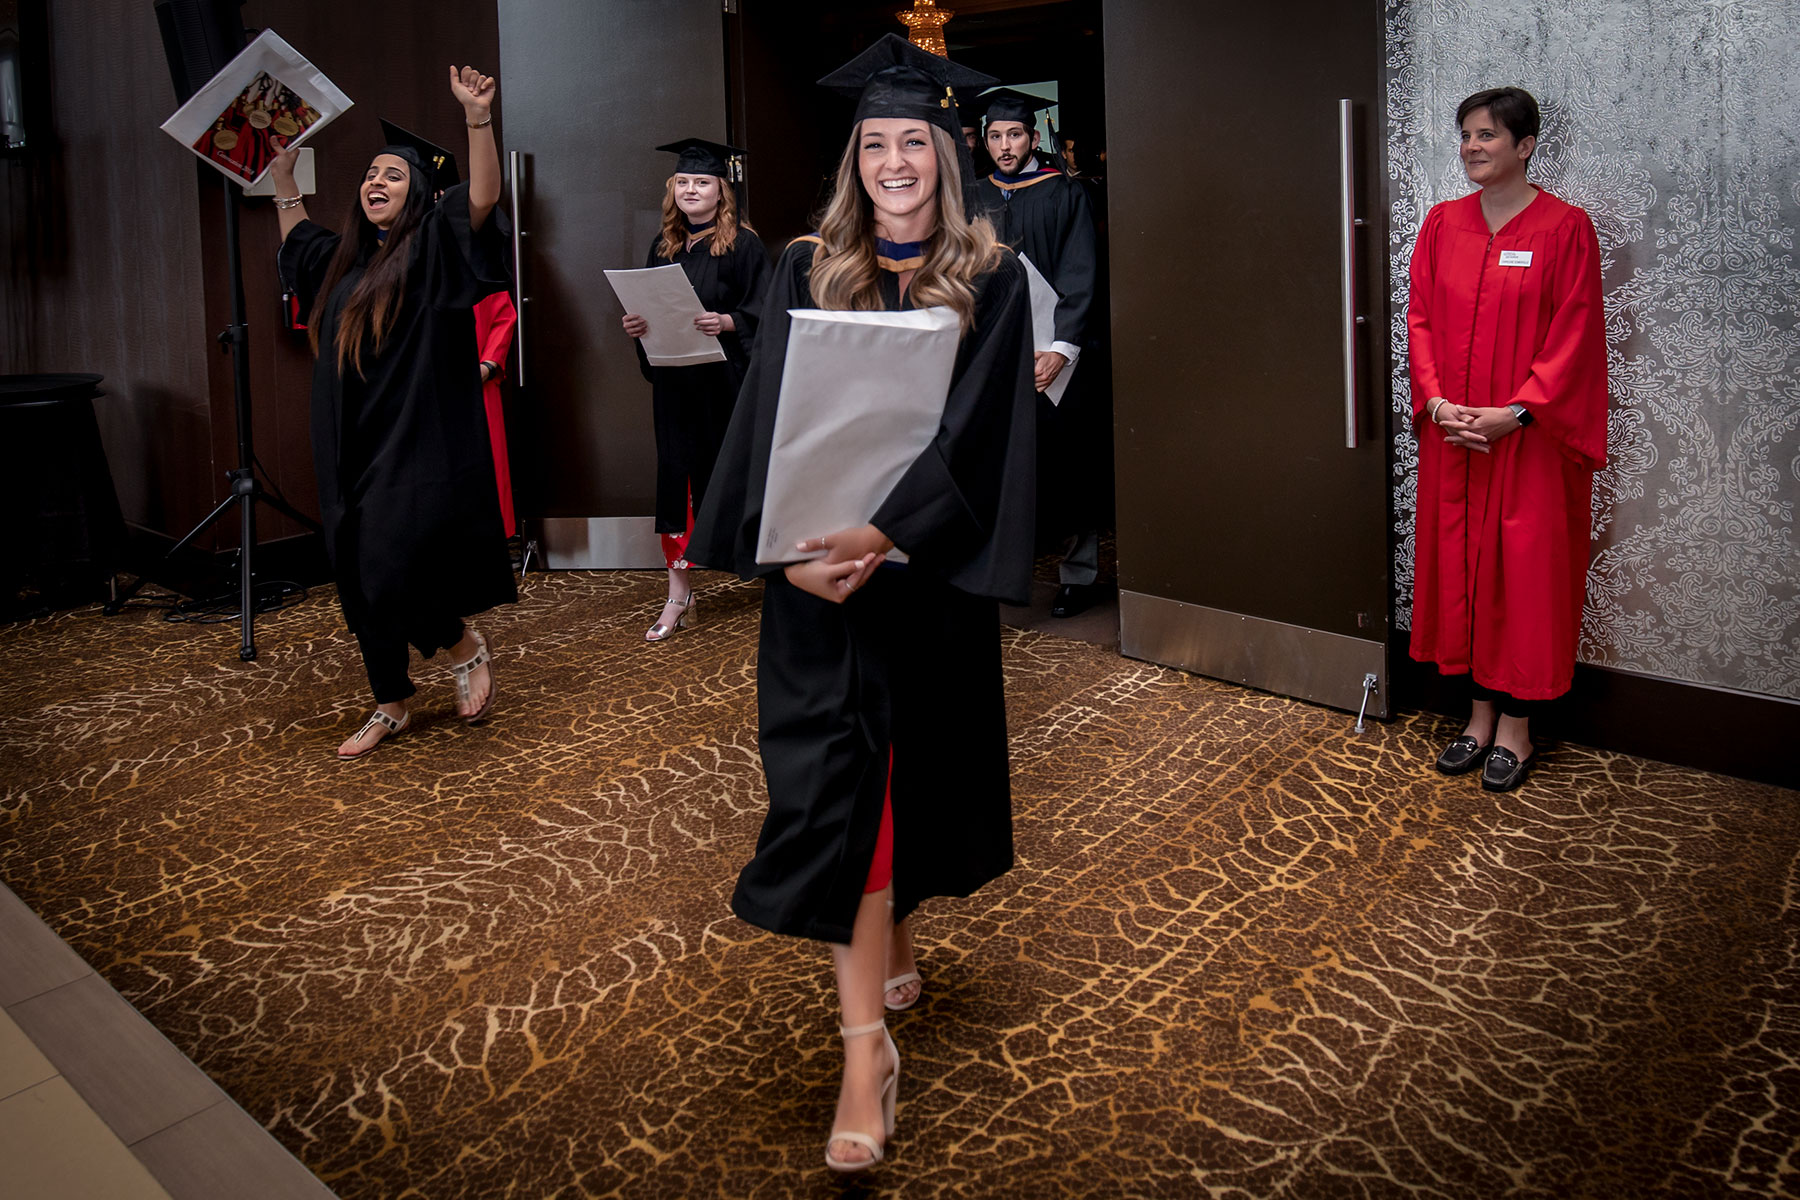 Students celebrate with their degrees and diplomas